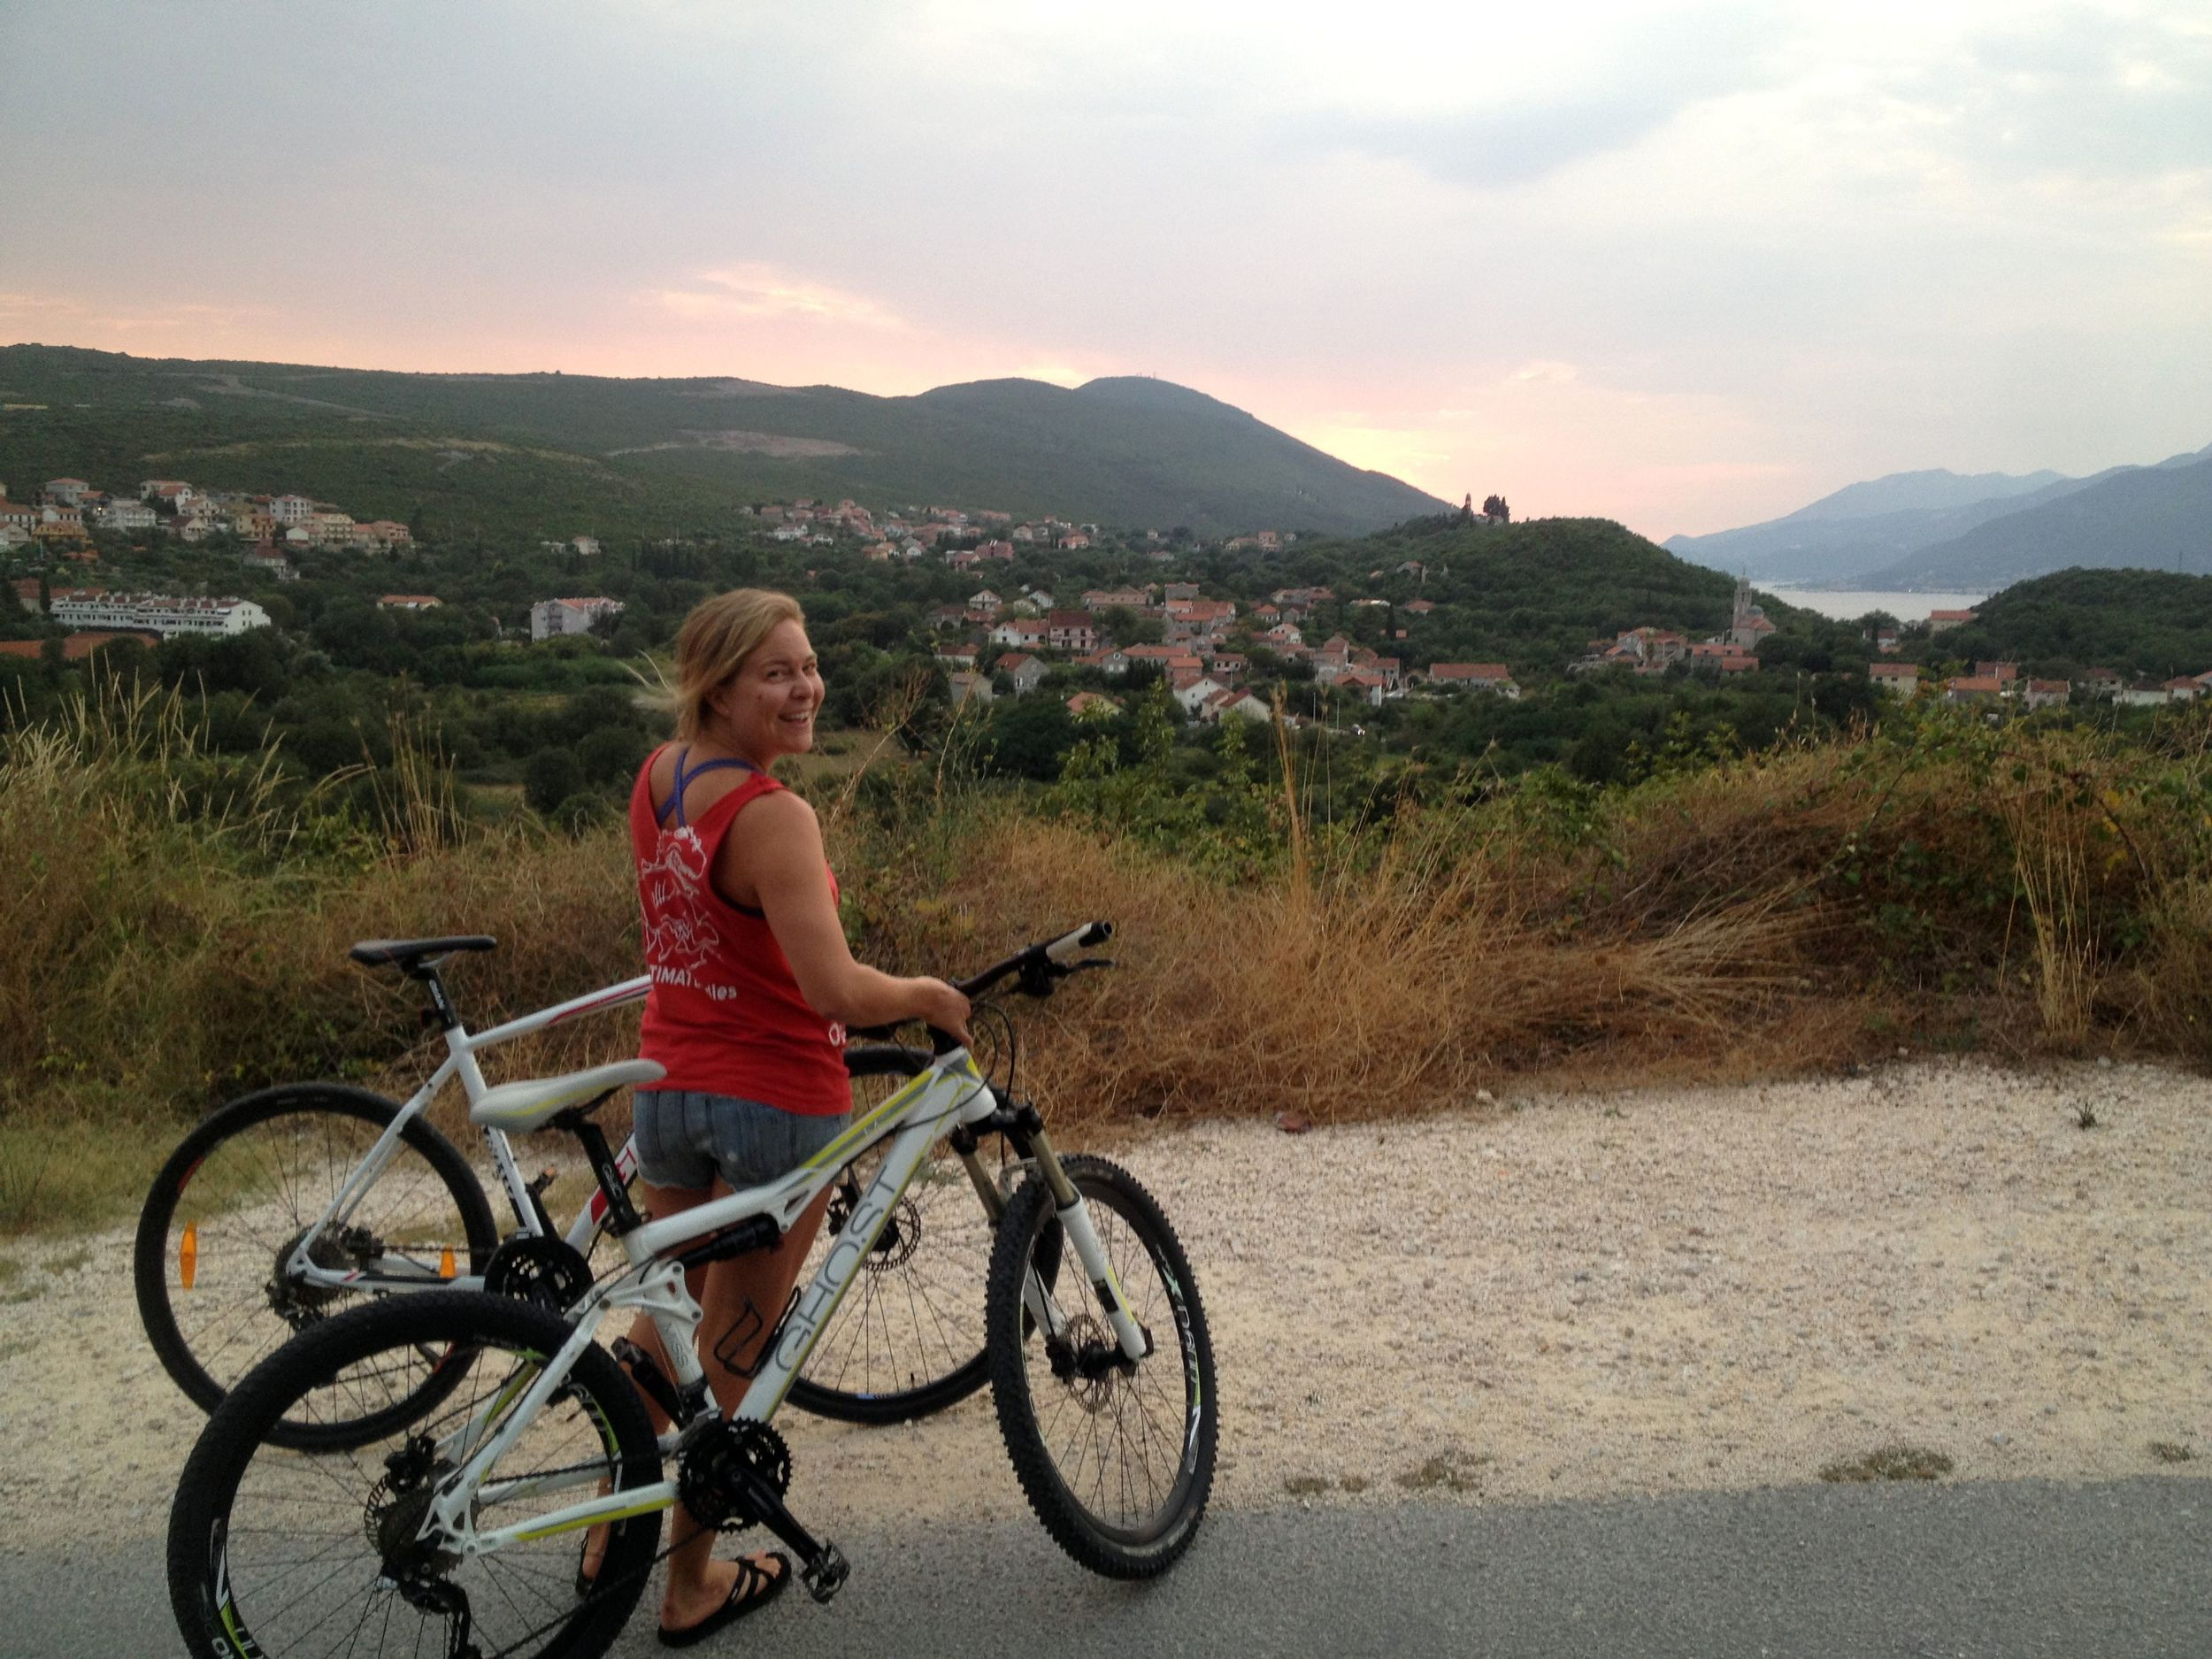 montenegro-mountain-bike-travel-blogger-dating.JPG